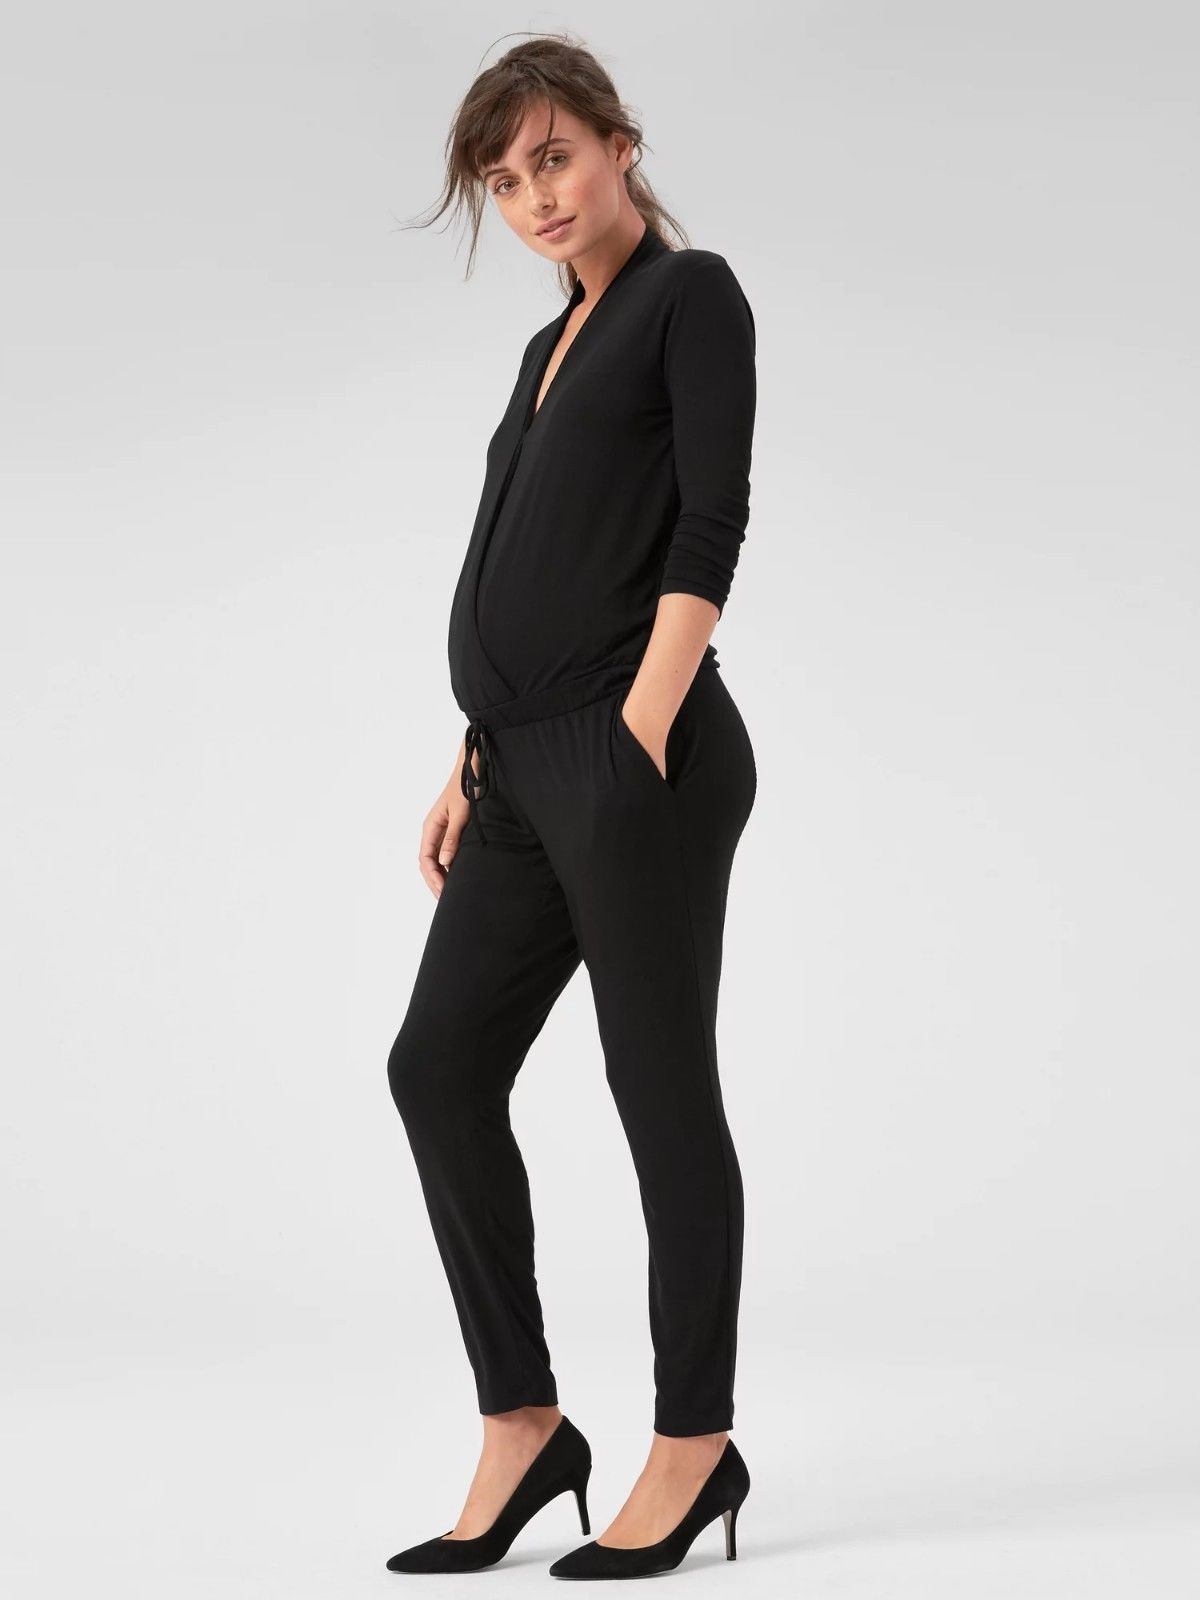 b707b4b0f43b Jumpsuits and Rompers 53447  Gap Maternity Long Sleeve Wrap Jumpsuit Nwt! S  Small -  BUY IT NOW ONLY   33.99 on  eBay  jumpsuits  rompers  maternity   sleeve ...